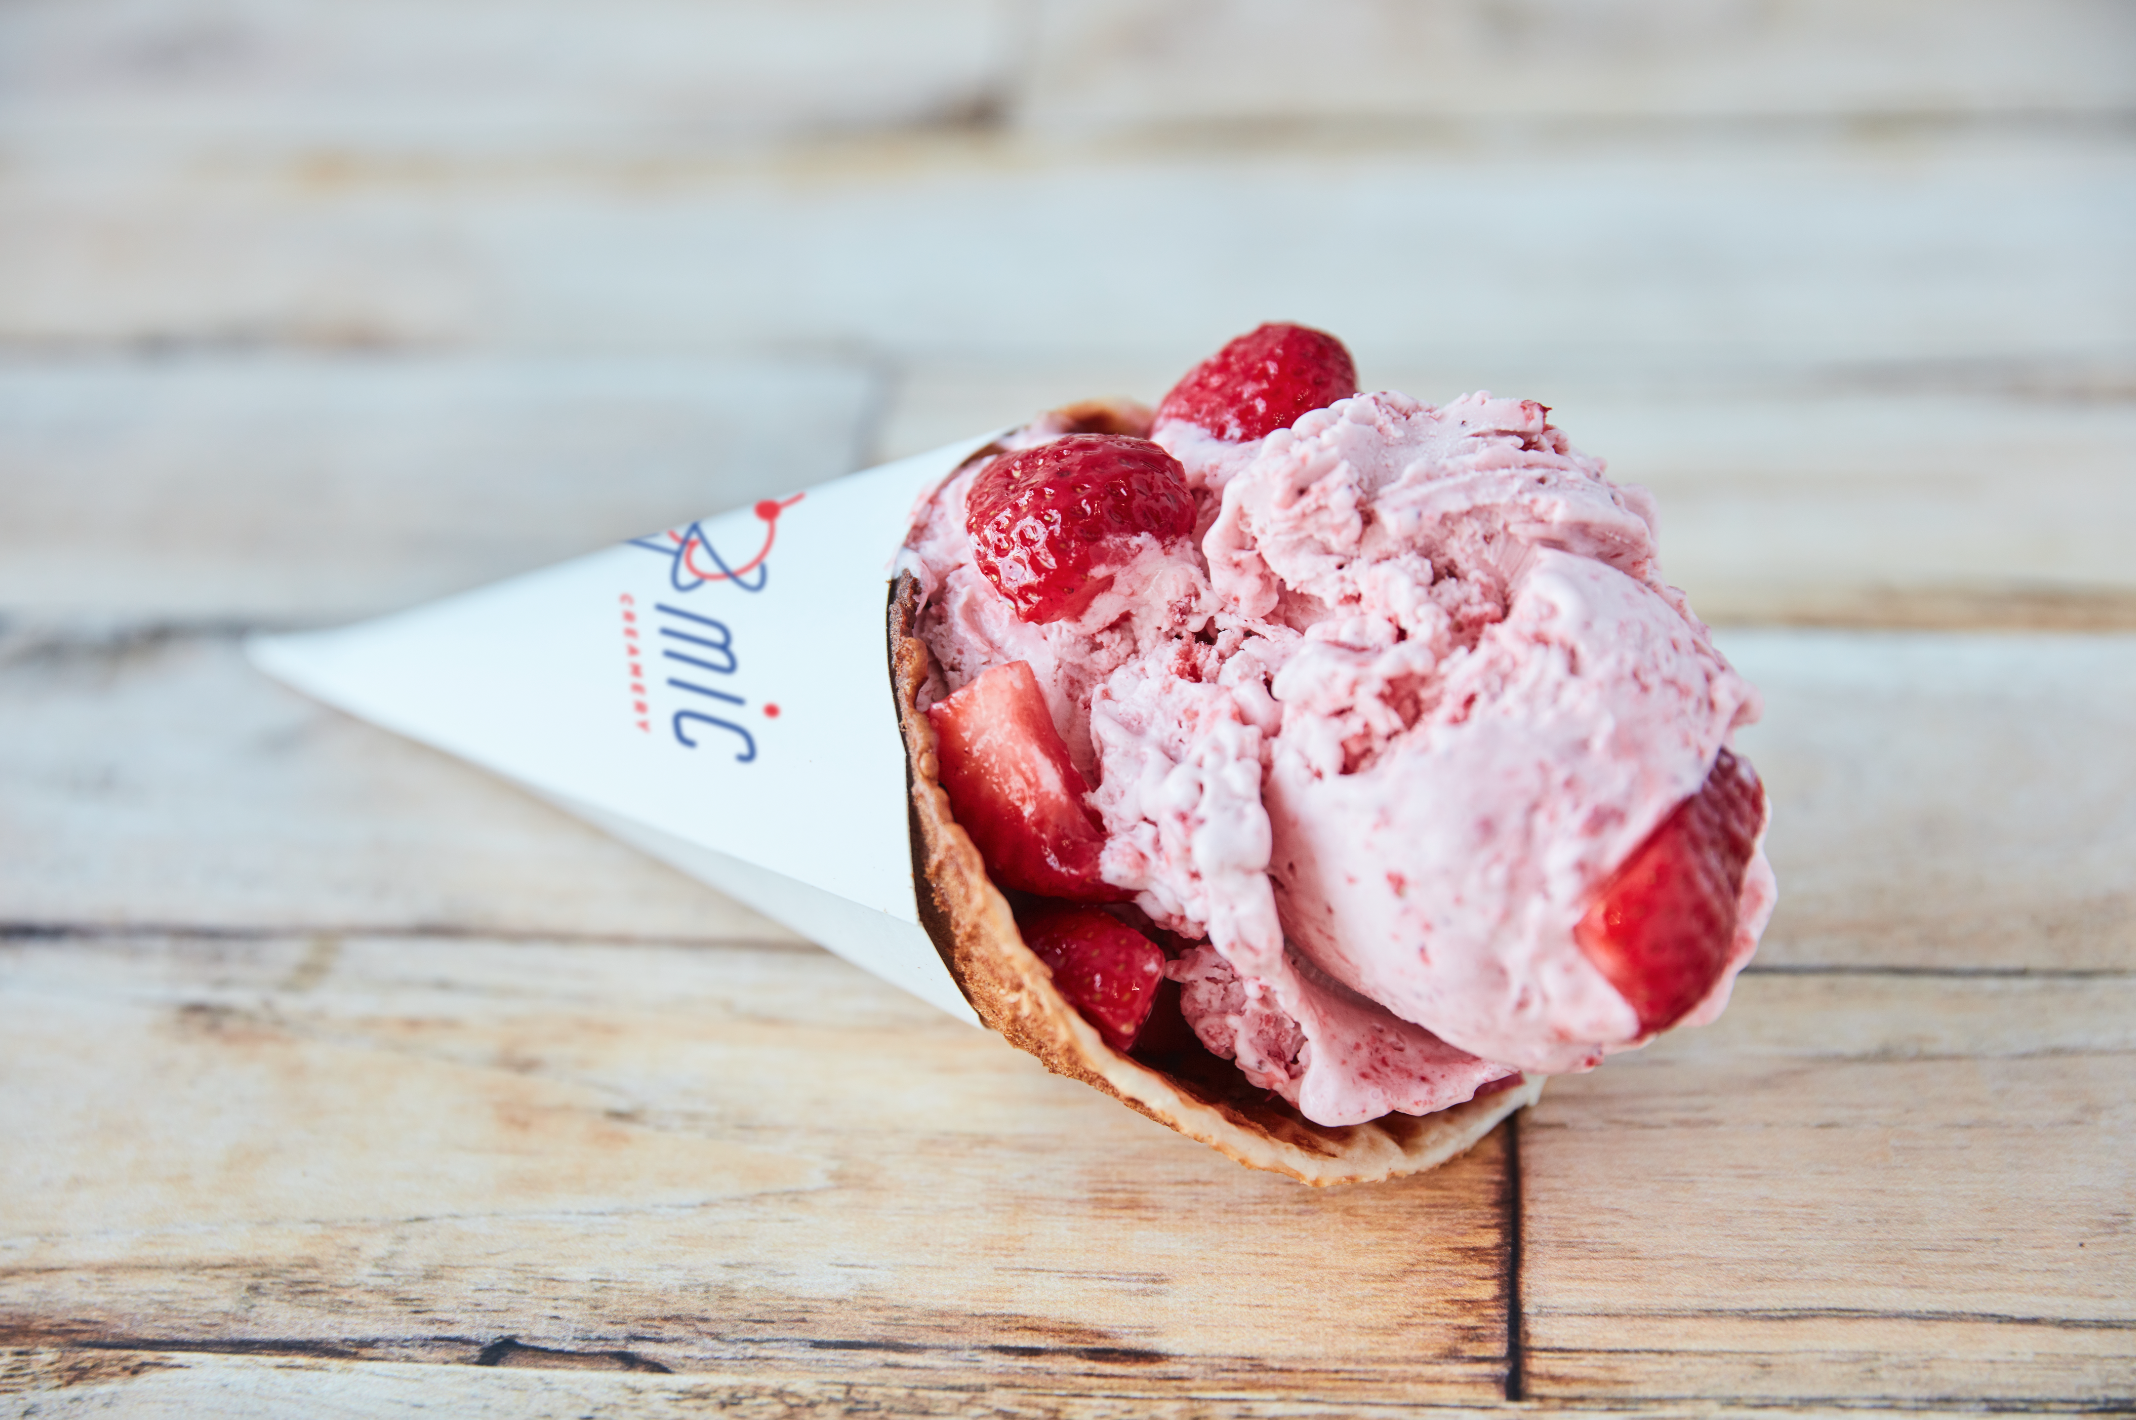 Atomic Creamery's ice cream is made fresh with all organic ingredients | photo courtesy of Atomic Creamery